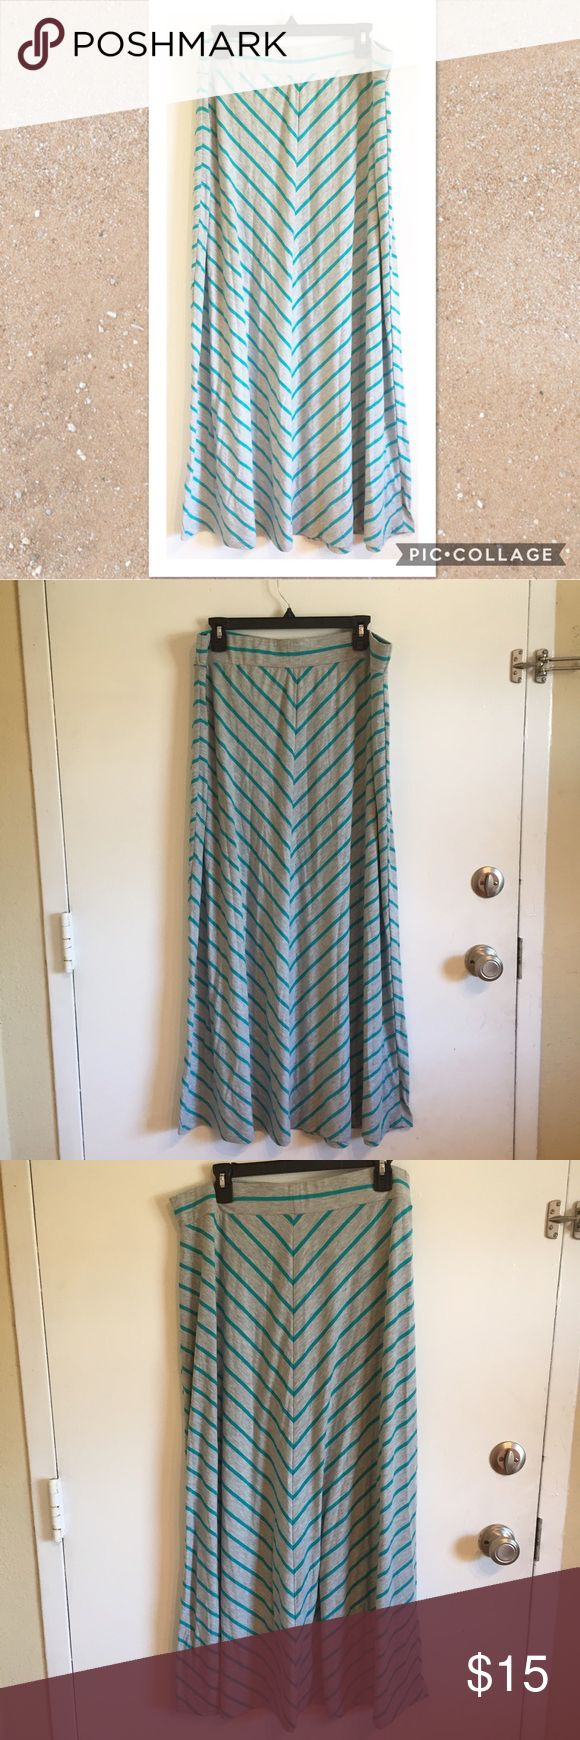 Plus Size Chevron Striped Maxi Skirt Plus Size Chevron striped Maxi skirt. Grey and Teal. Size 1x. Elastic waist. #plus #plussize #striped #chevron #maxi #skirt #springbreak #spring #summer #punkydoodle  No modeling Smoke free home  I do discount bundles Faded Glory Skirts Maxi